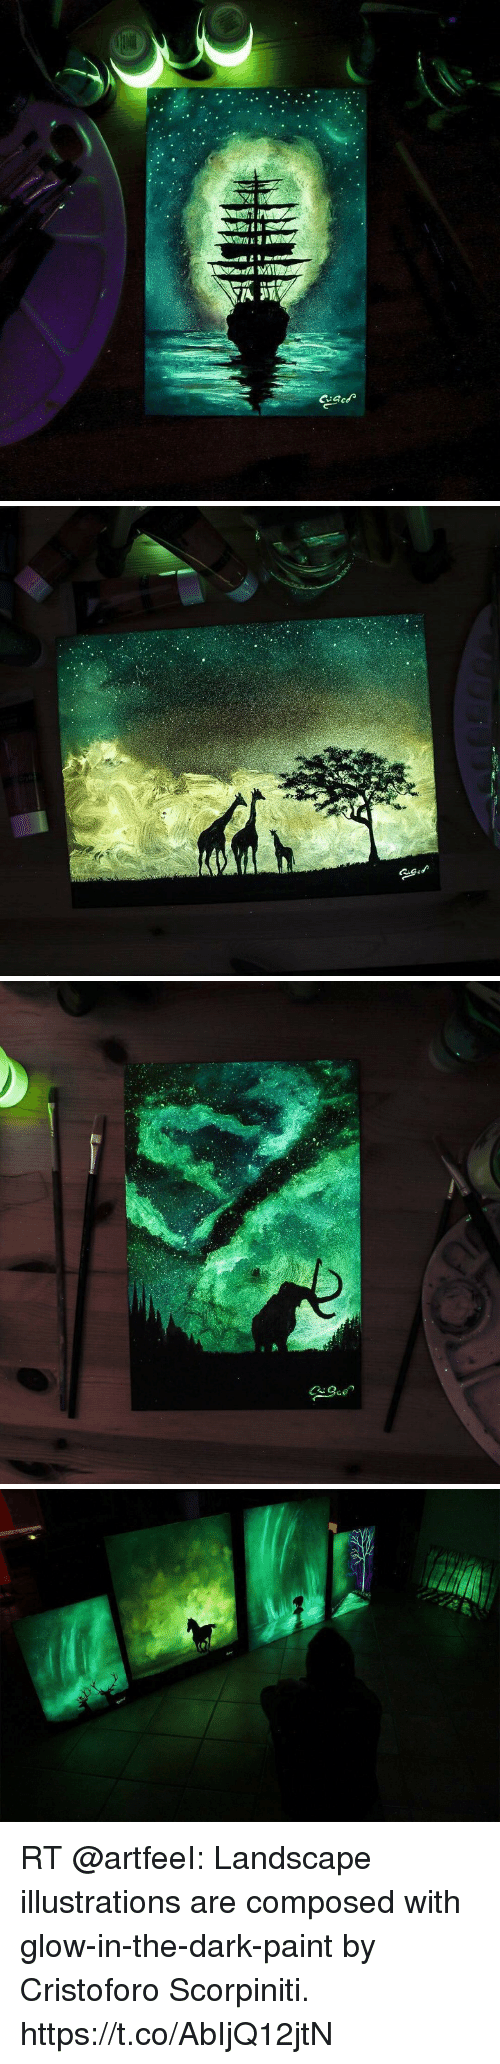 Memes, Paint, and 🤖: RT @artfeeI: Landscape illustrations are composed with glow-in-the-dark-paint by Cristoforo Scorpiniti. https://t.co/AbIjQ12jtN